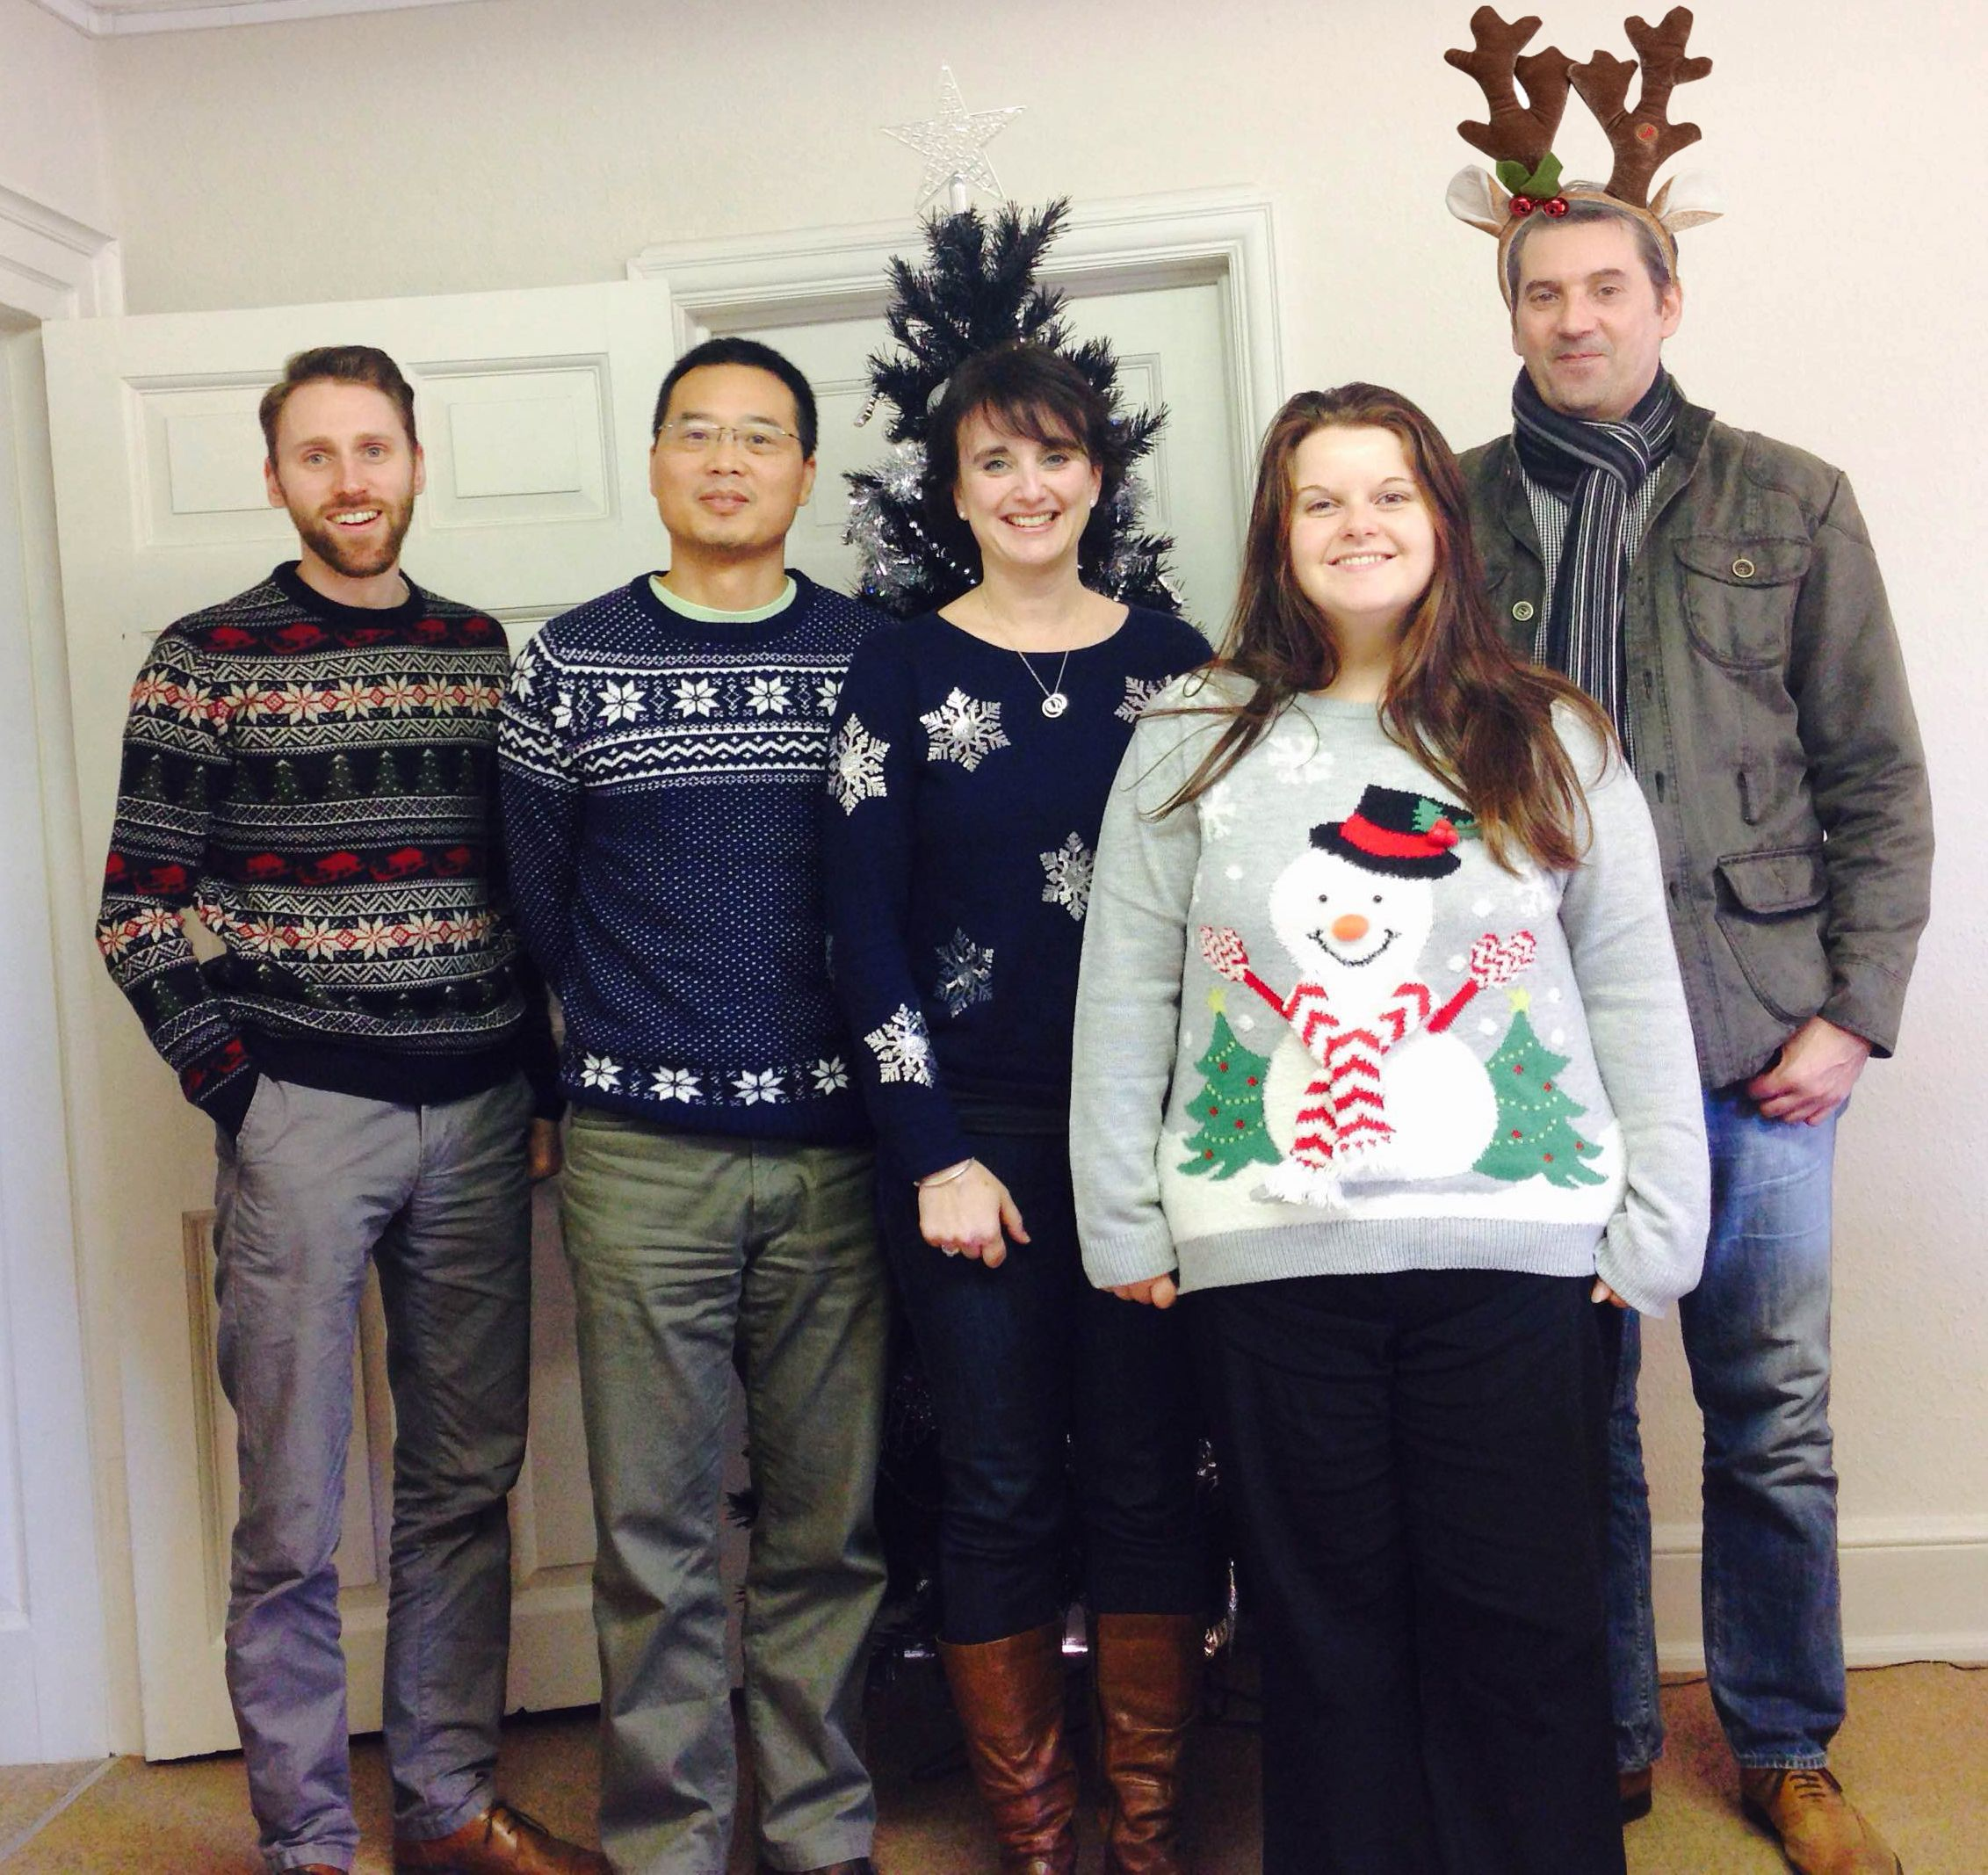 Who gets your vote for the most festive team member today?